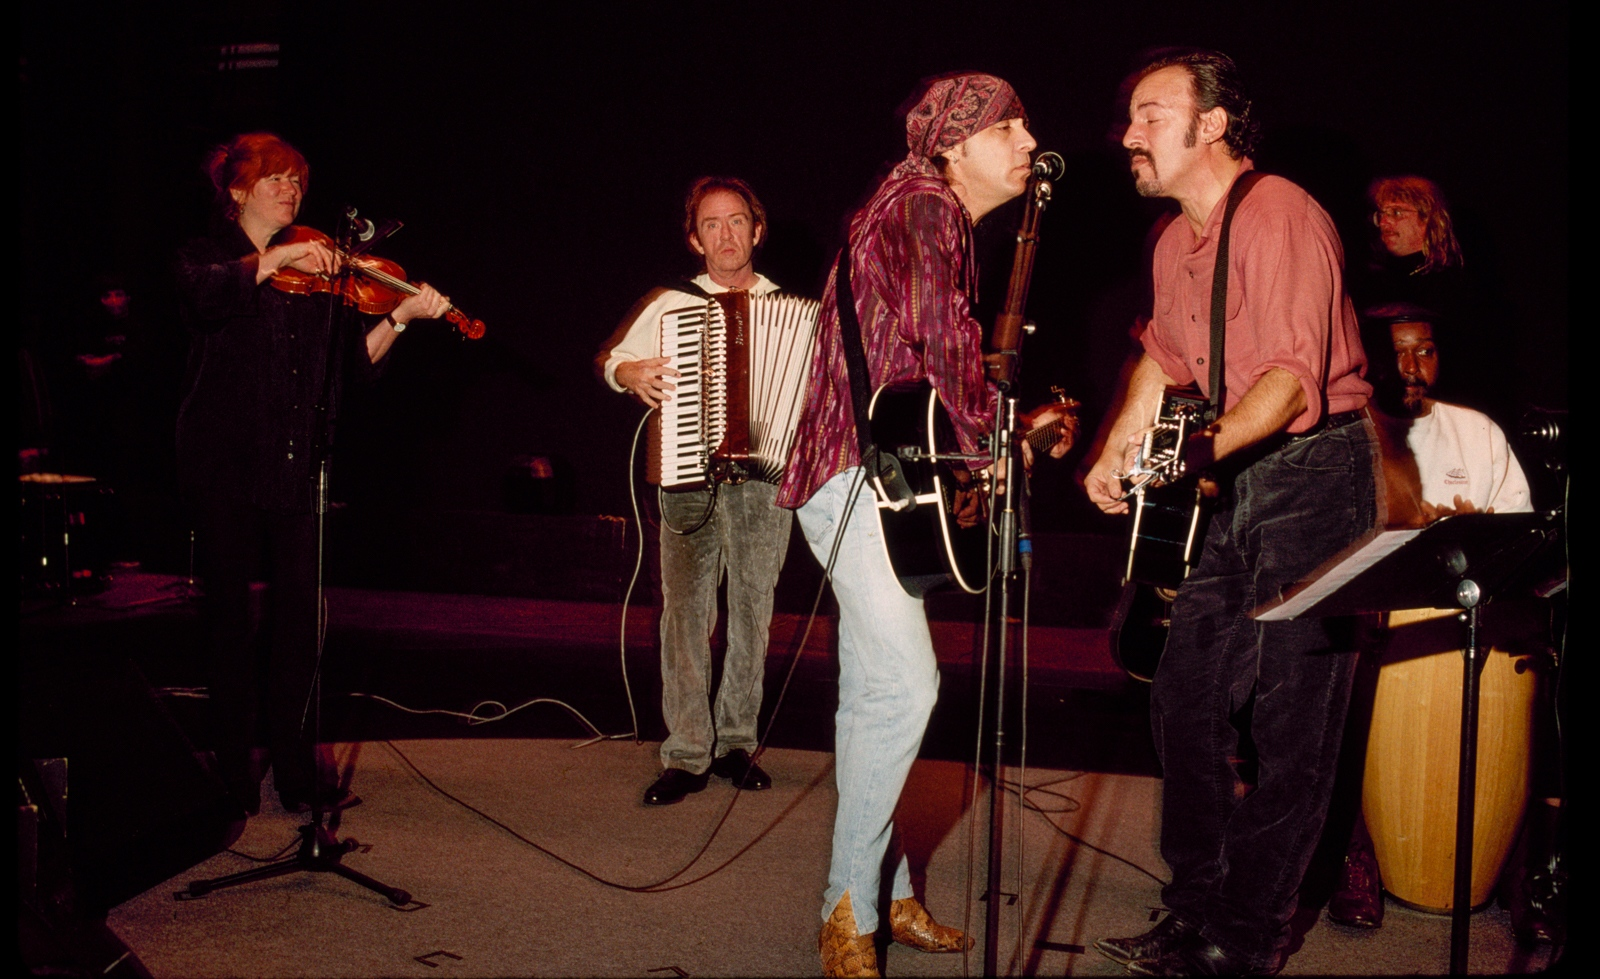 Bruce Springsteen & the E Street Bandon the Ghost of Tom Joad Tour, 1996